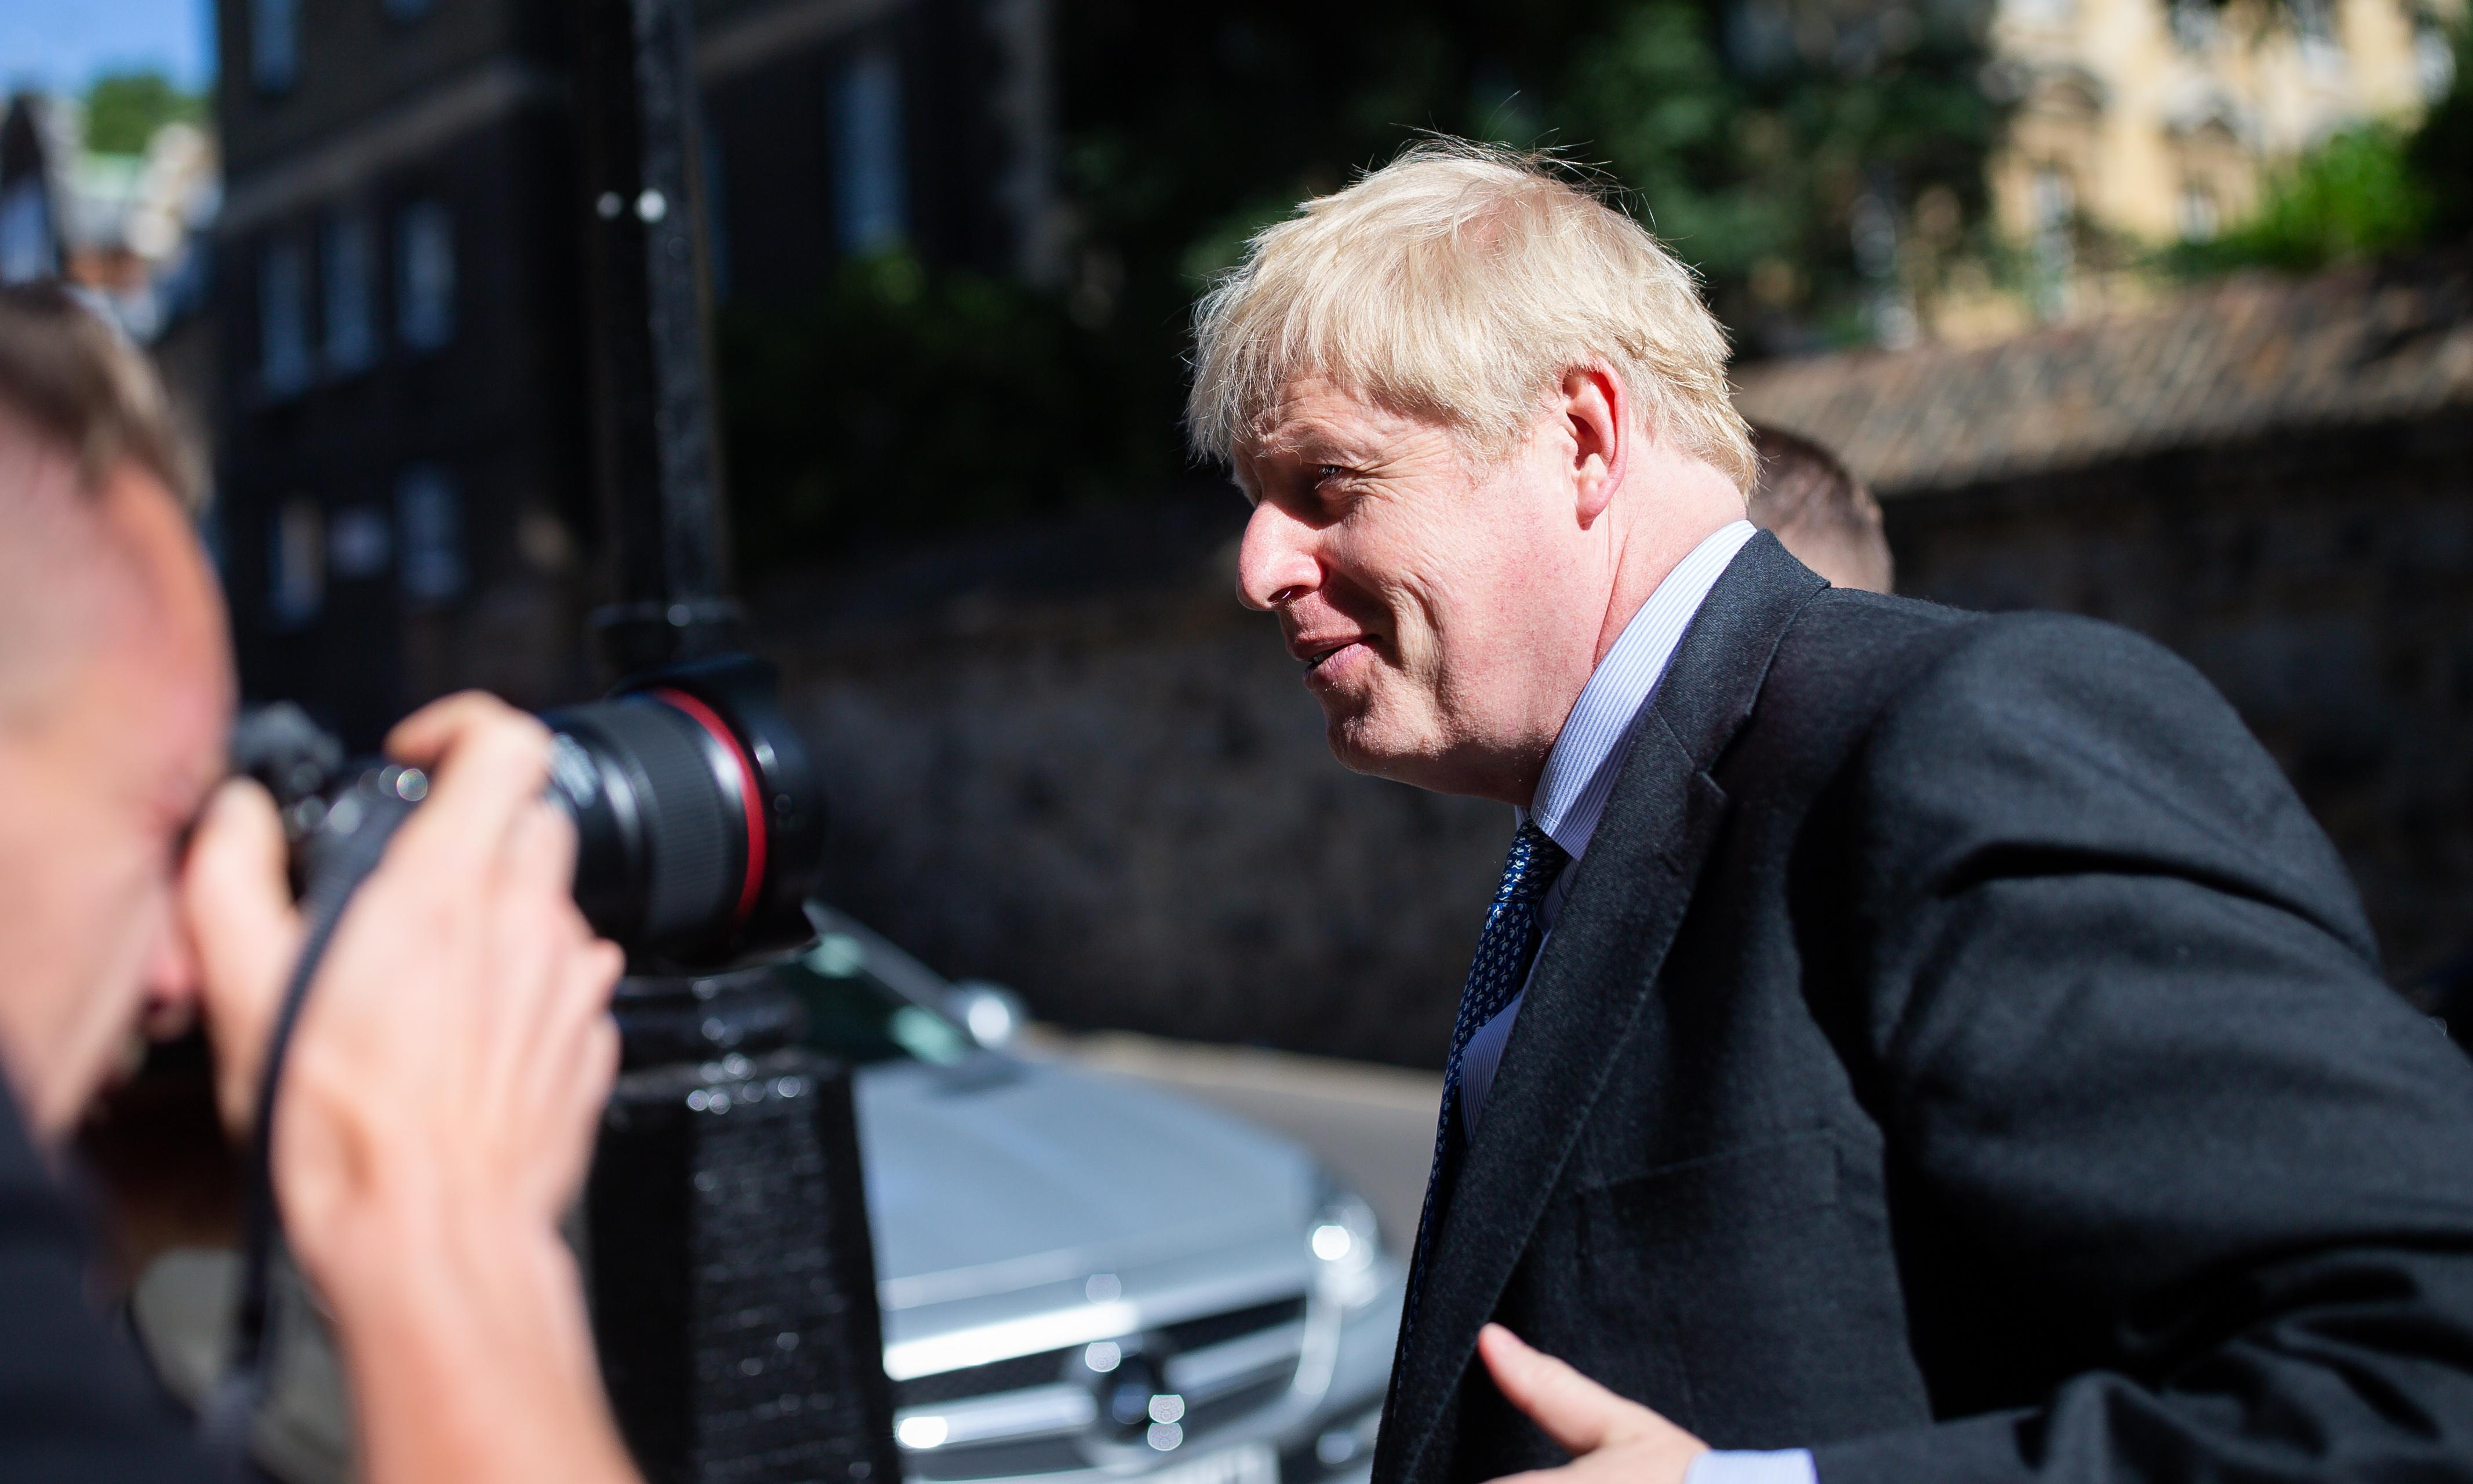 Boris Johnson has received £500,000 in donations since May